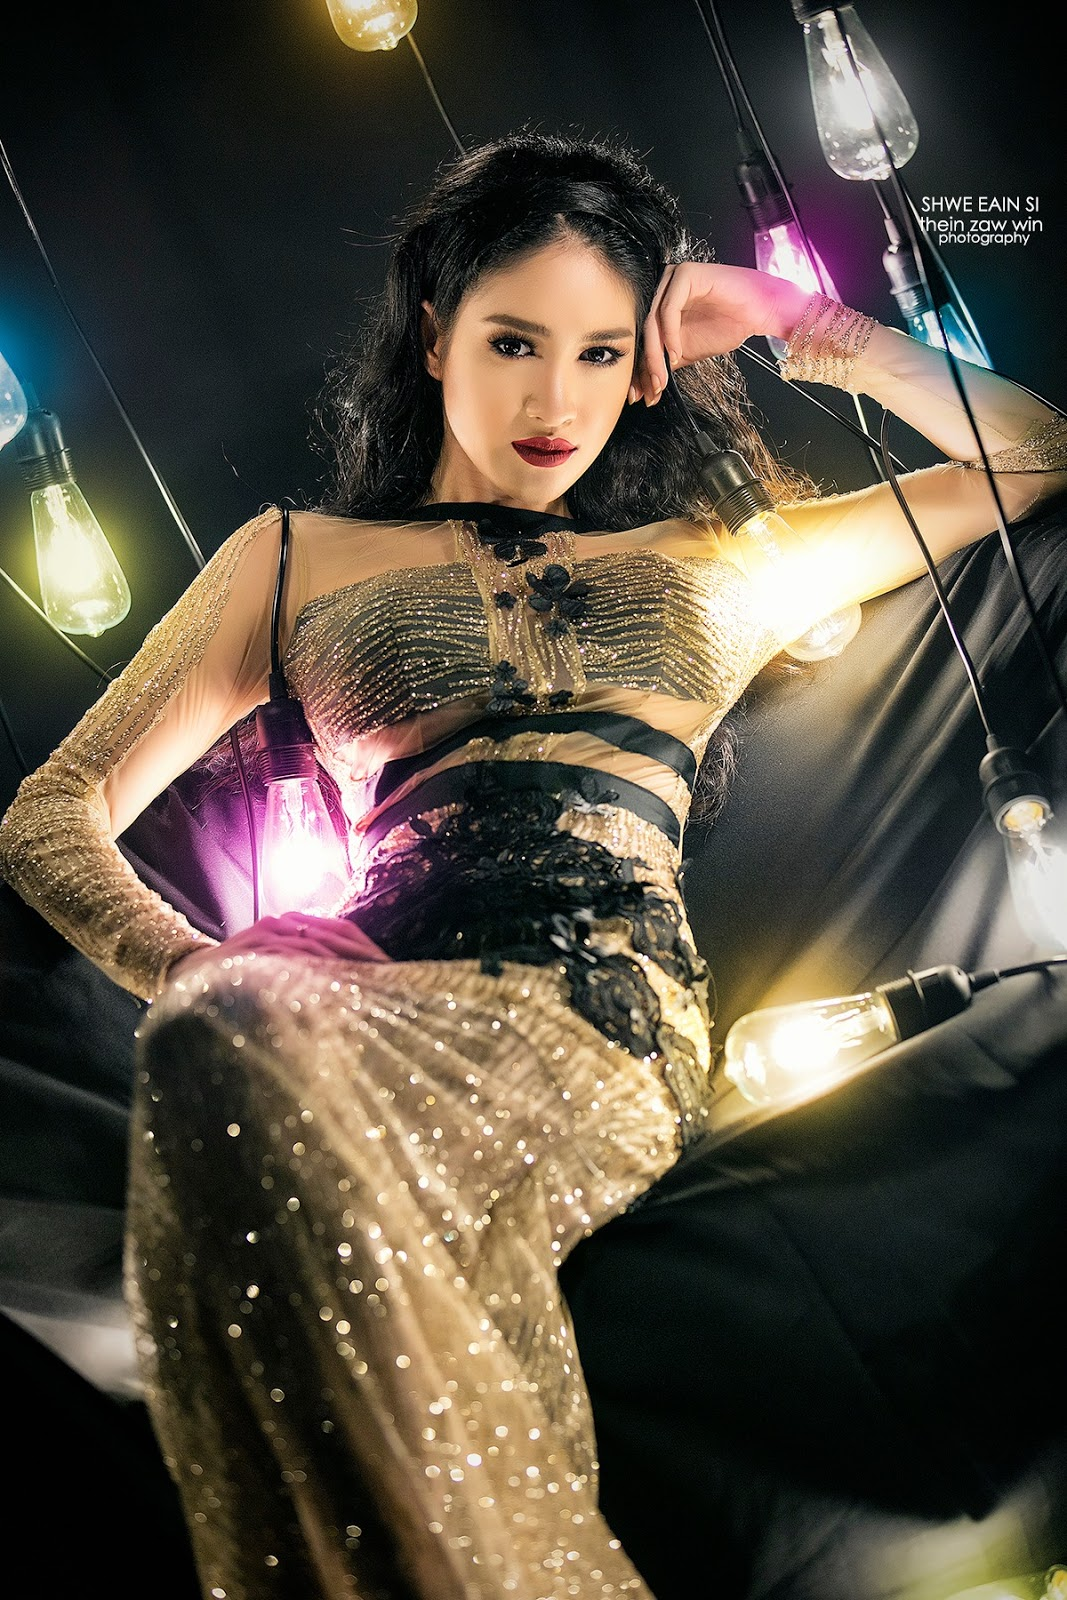 Shwe Eain Si Colorful Light Bulbs Photoshoot In Sunday Journal Cover